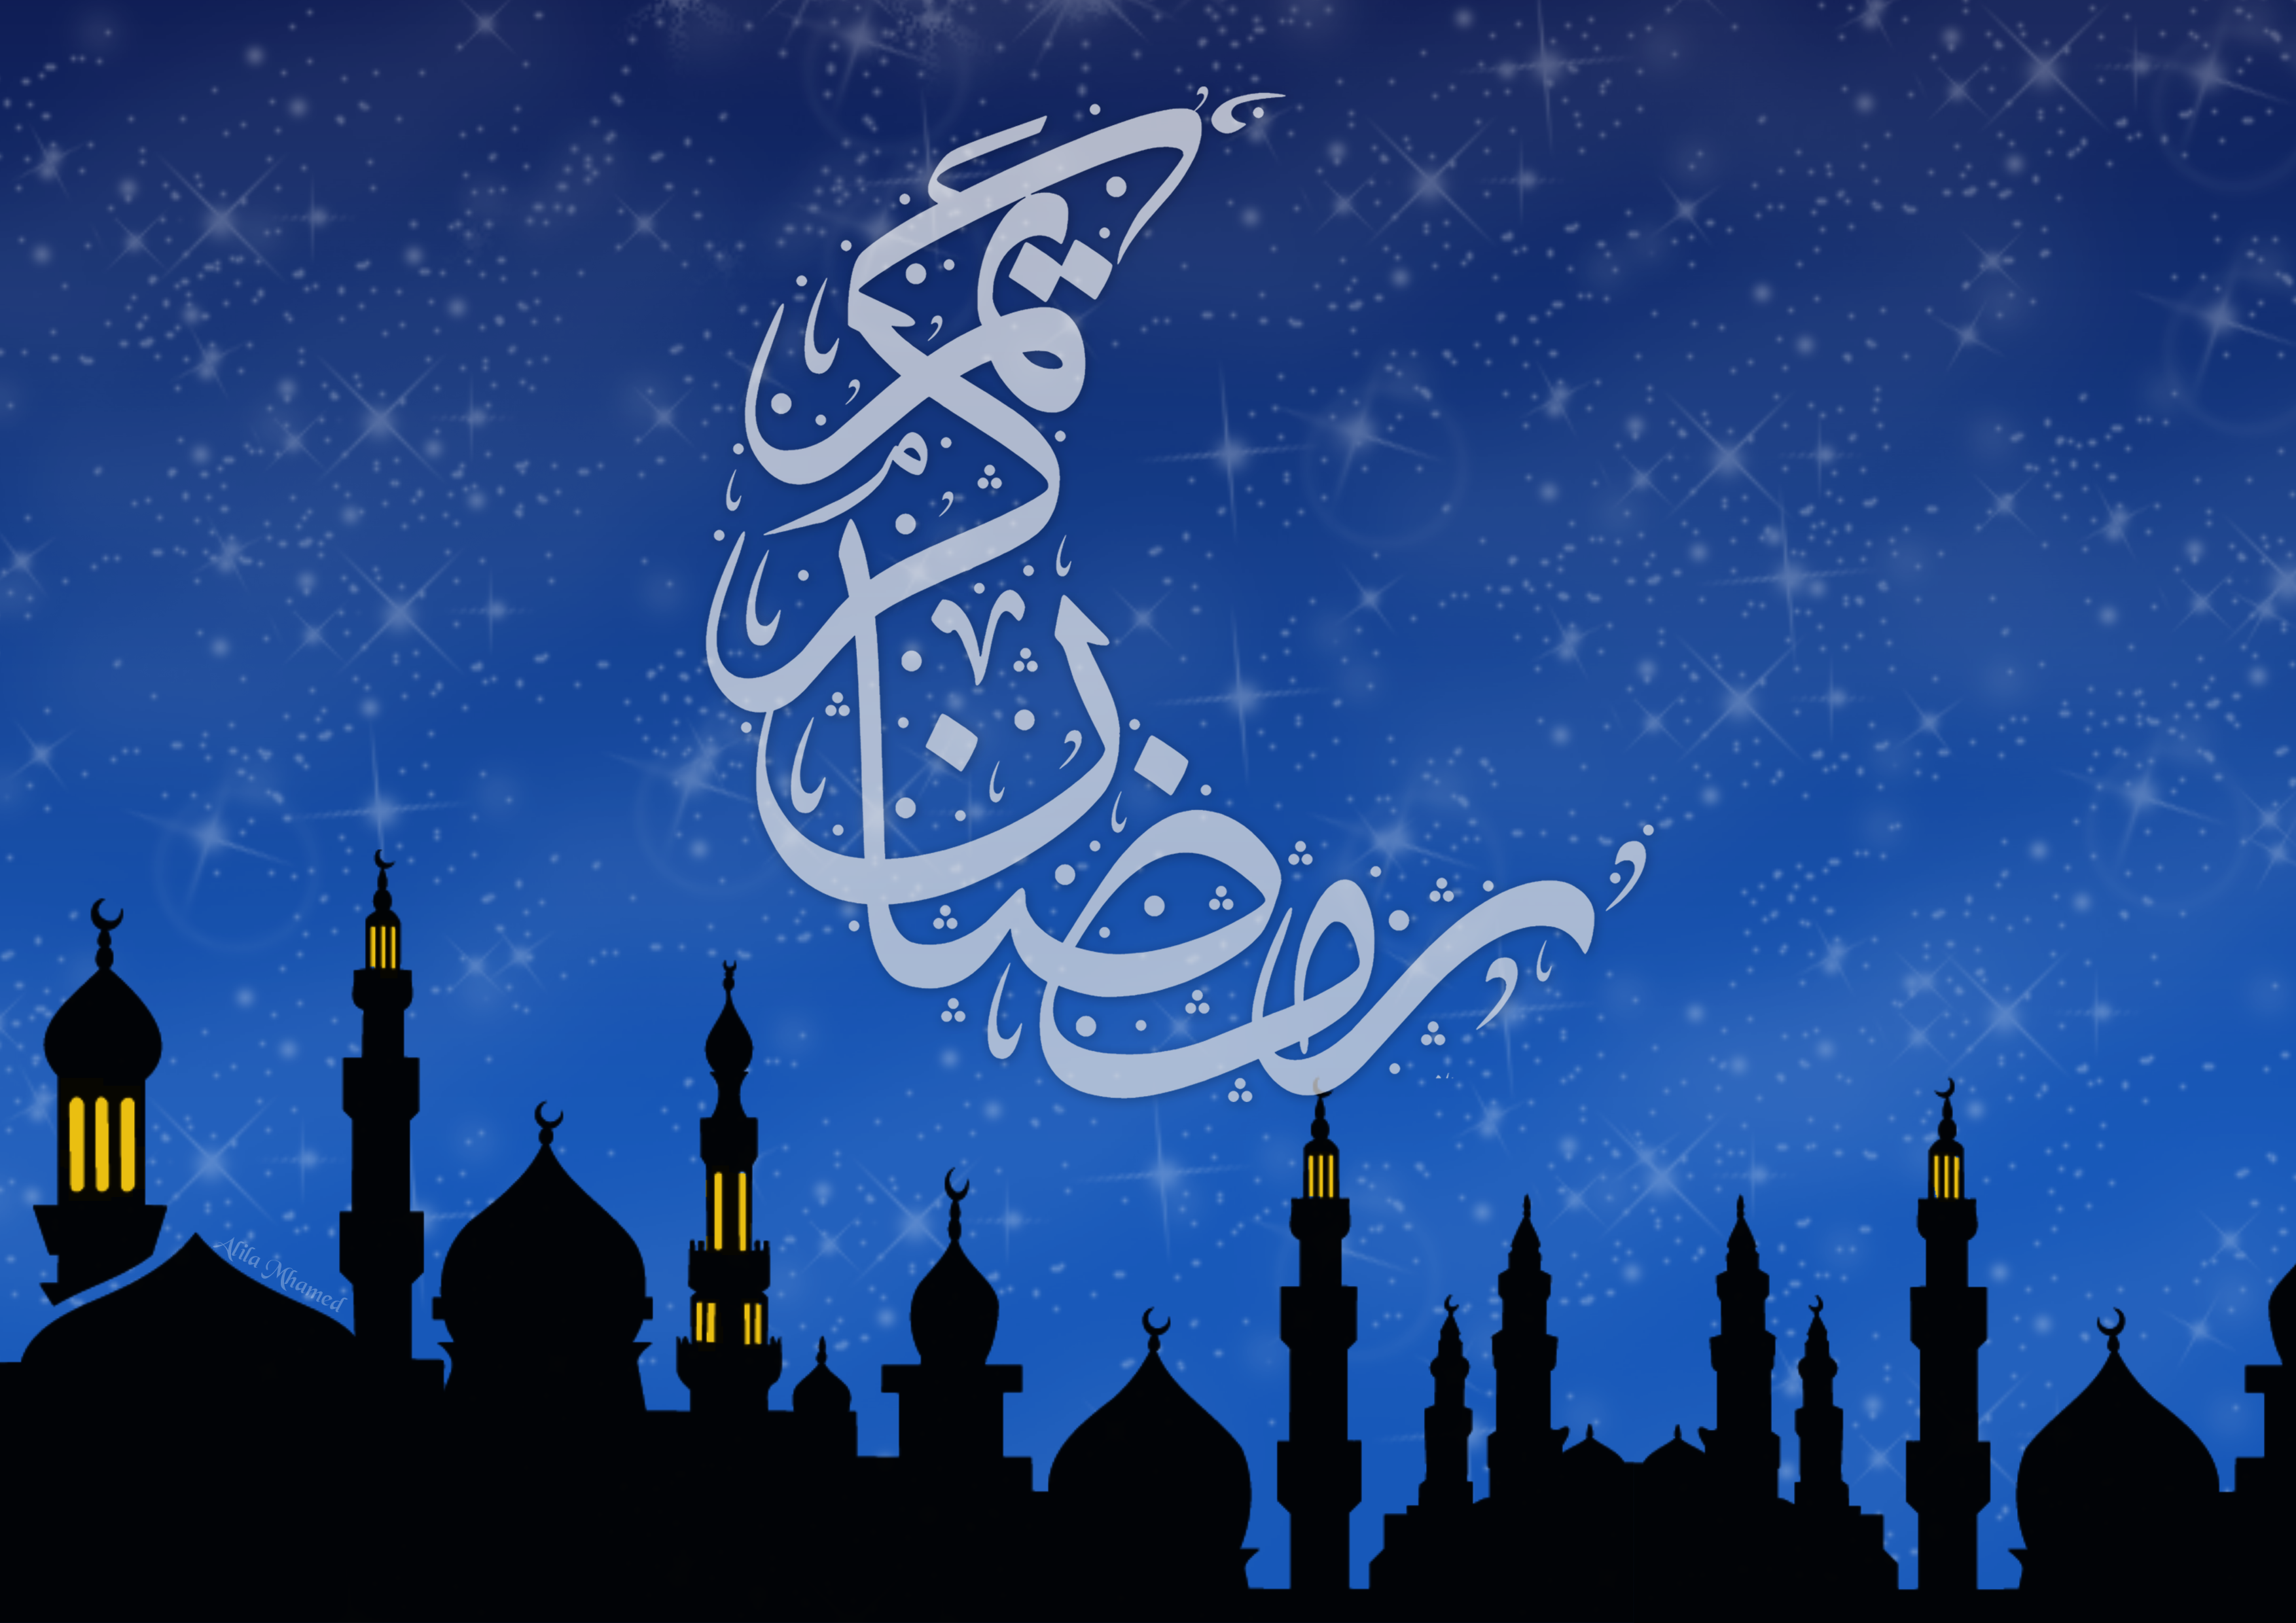 Download PlusPng.com  - Ramadan HD PNG